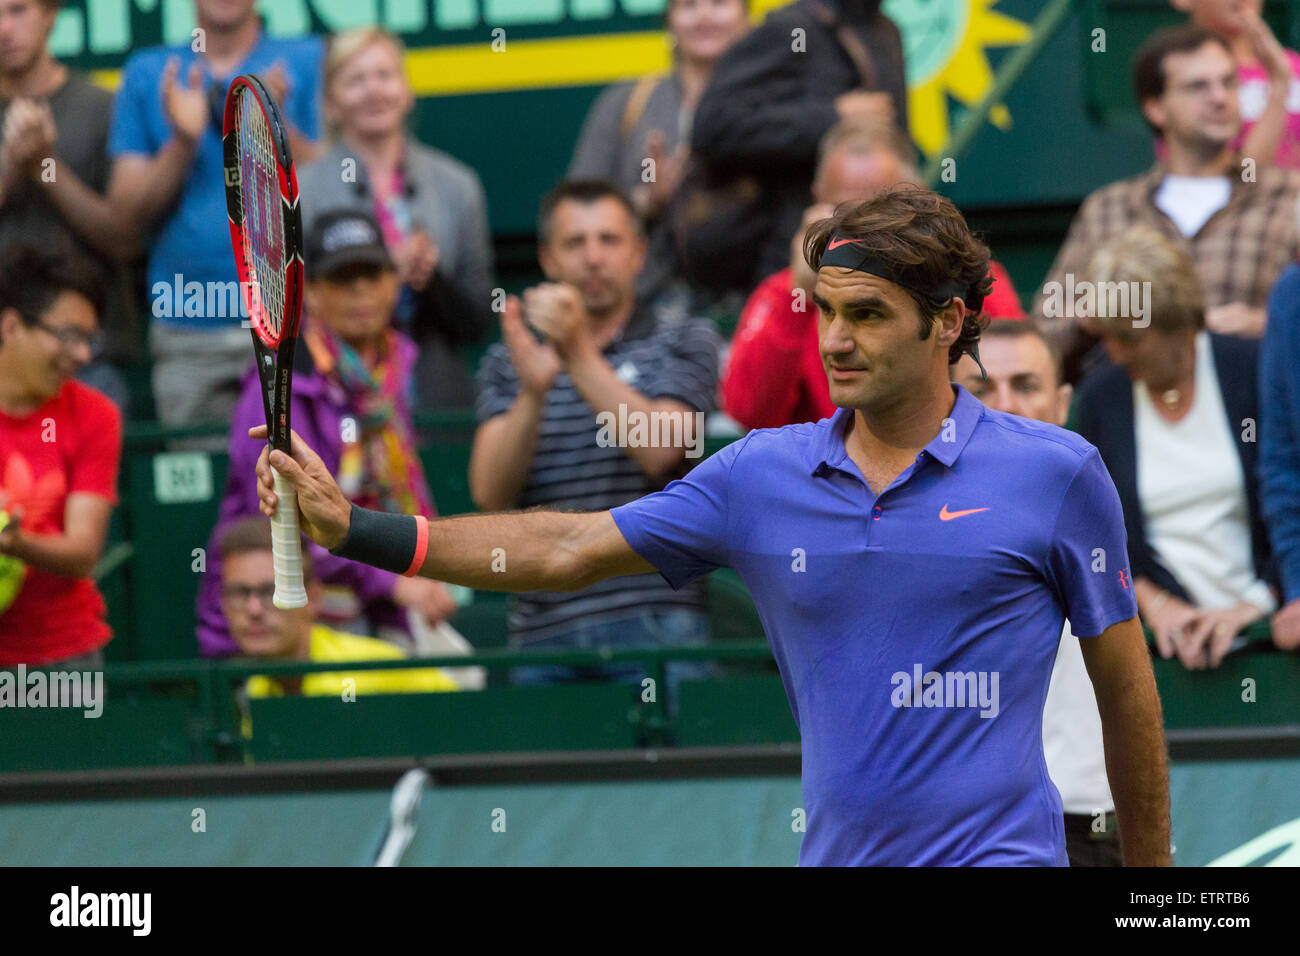 Roger Federer (SUI) acknowledges the crowd after his first round match in  the Gerry 15a6d9456d65